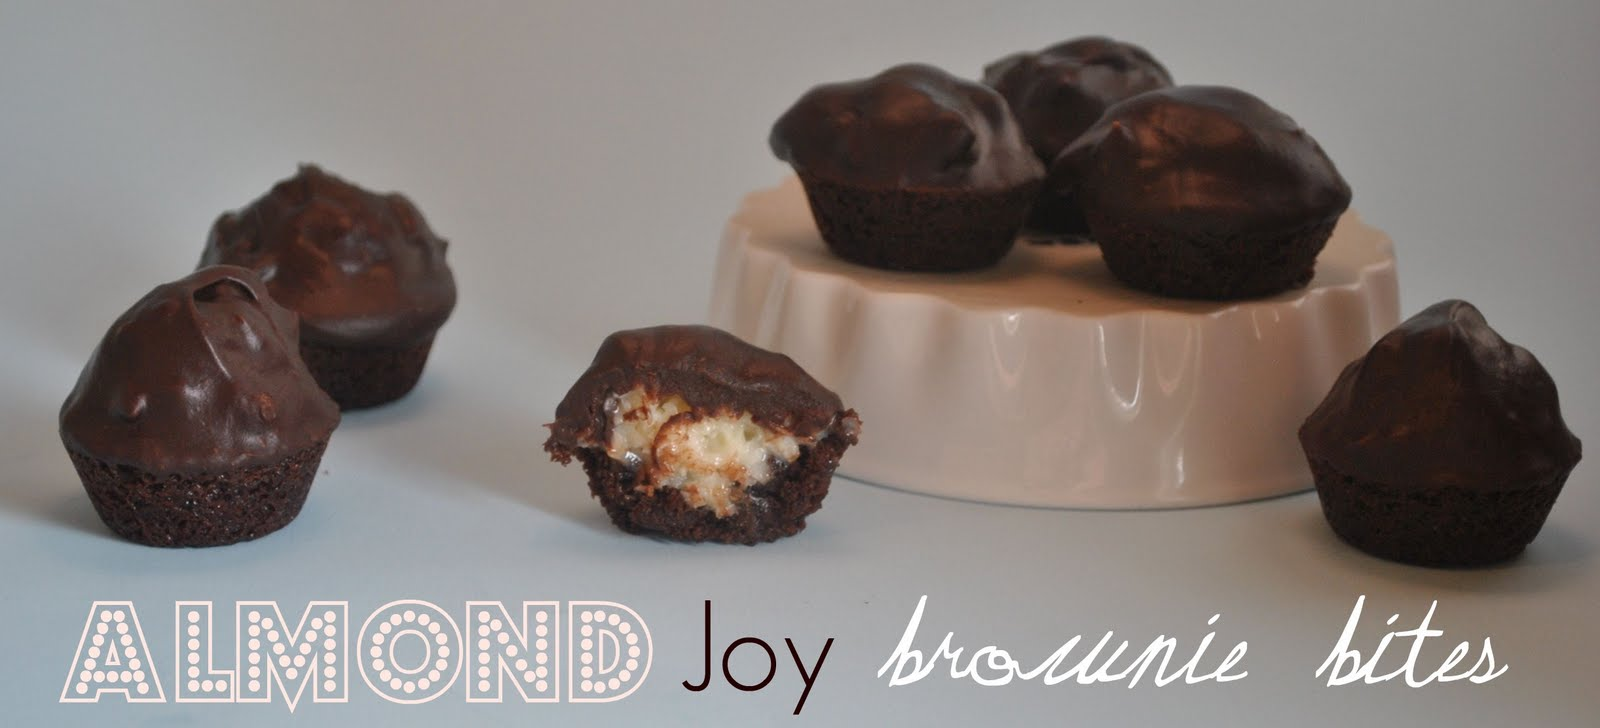 The Farm Girl Recipes: Almond Joy Brownie Bites